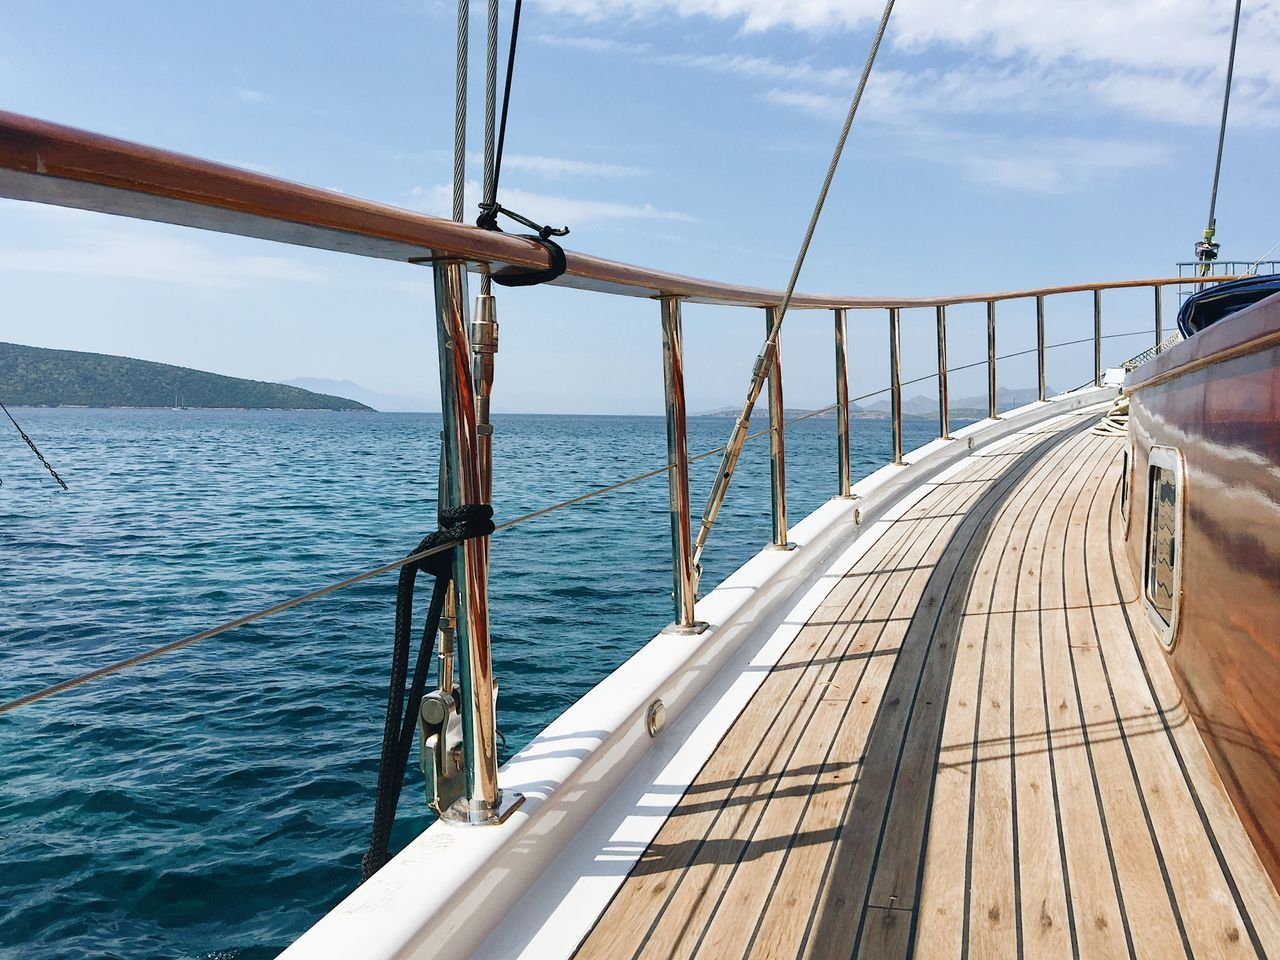 sea, water, sky, railing, nautical vessel, transportation, mode of transport, no people, day, nature, cloud - sky, wood - material, outdoors, boat deck, sailing, horizon over water, beauty in nature, scenics, sailing ship, close-up